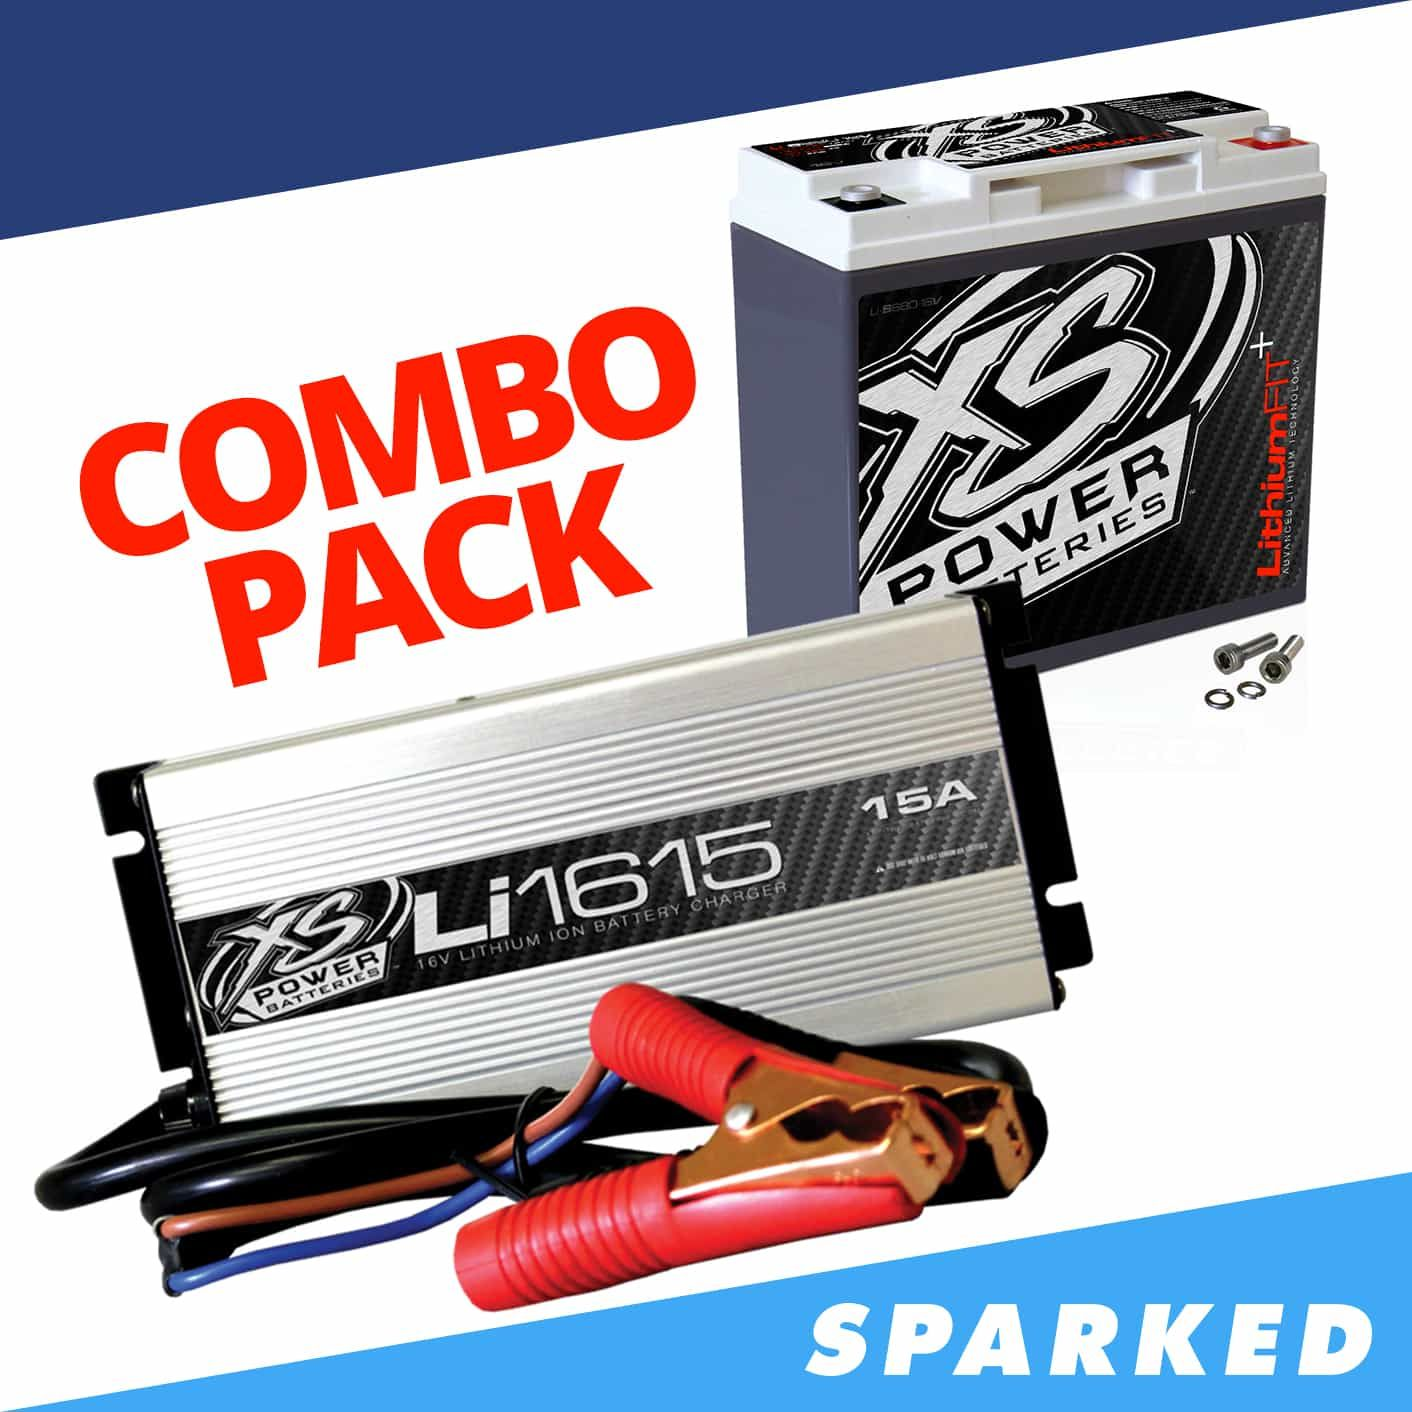 Li S680 16ck Xs Power Li S680 16 16v Lithium Battery Li1615 15a 16v Intellicharger Combo Sparked Innovations Lithium Battery Combo Battery